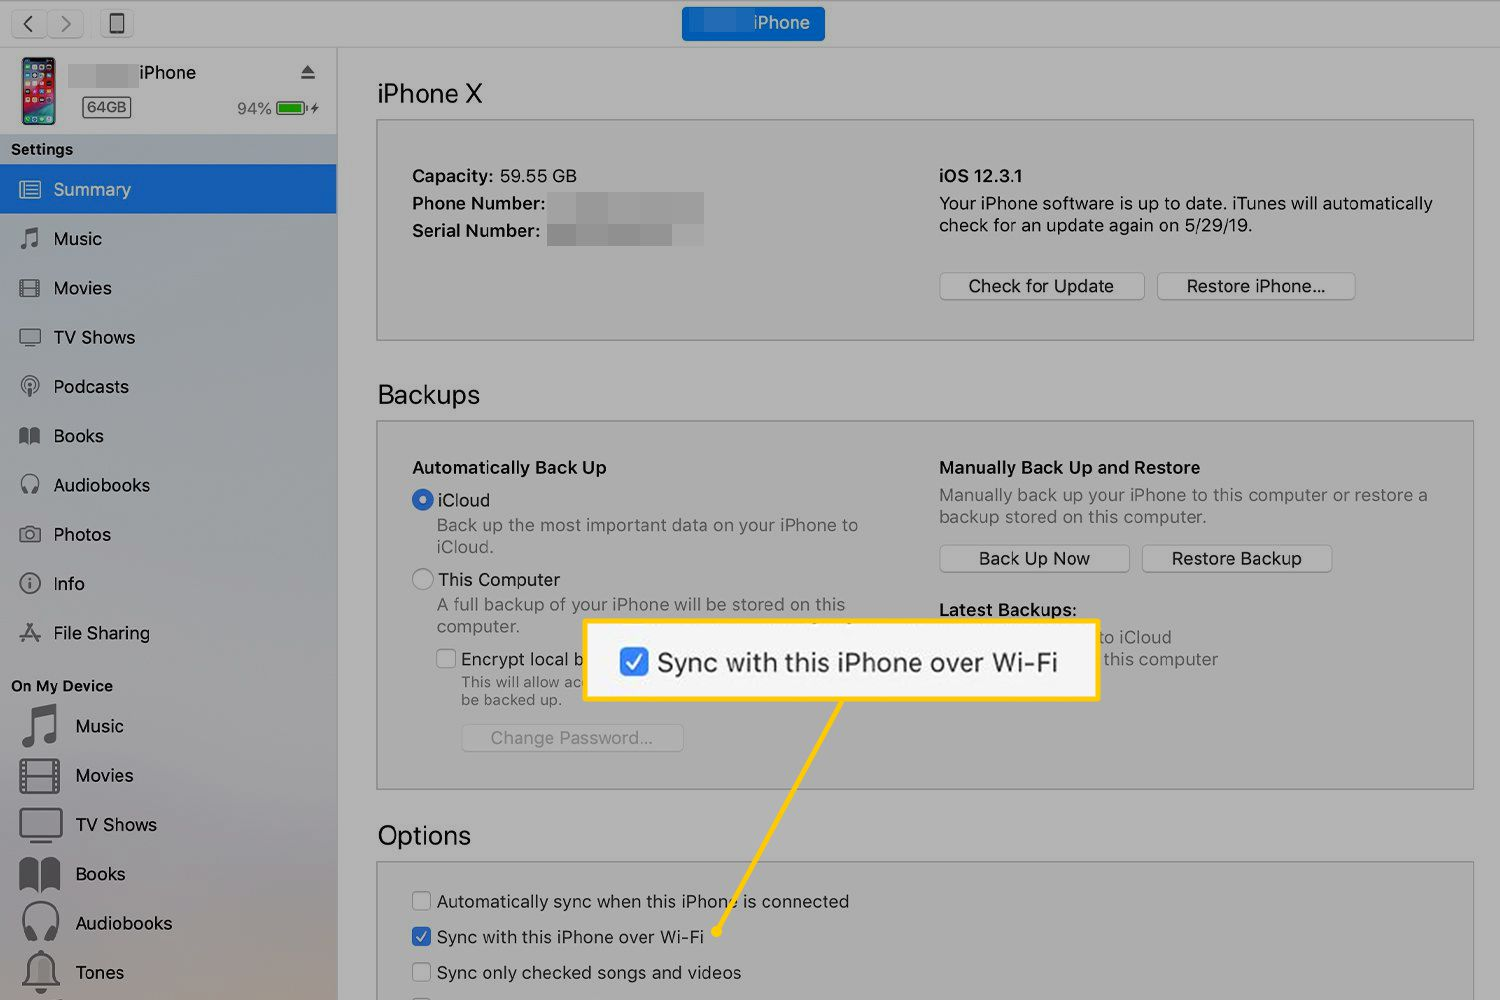 How to Sync iPhone Over Wi-Fi